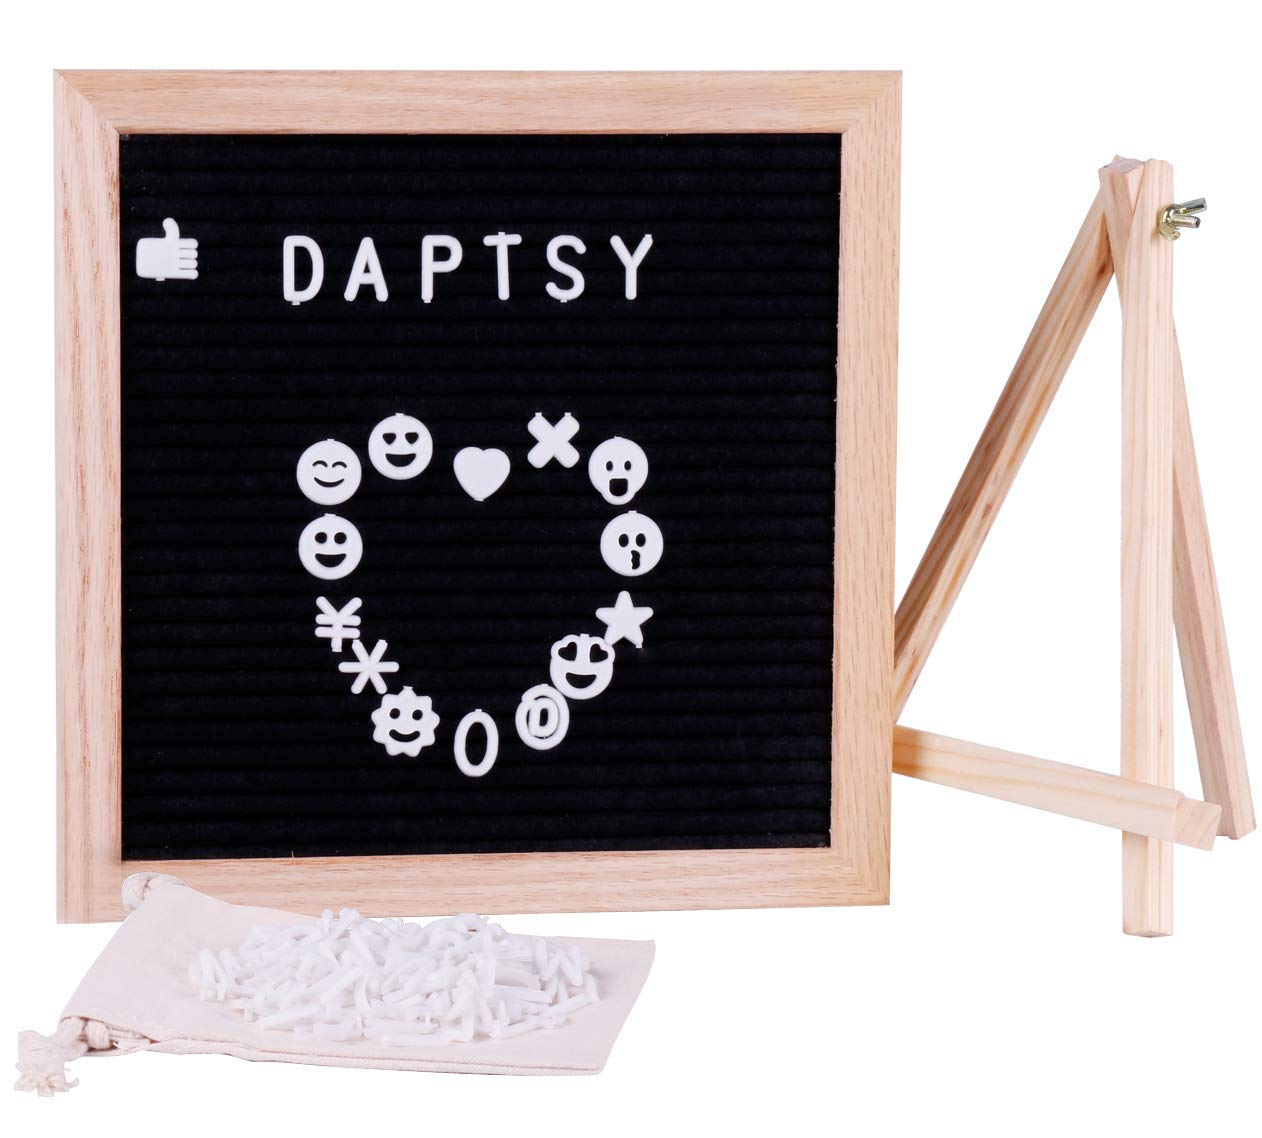 Changeable Felt Letter Board 10x10 inches with 340 White Plastic Letters, Numbers & Symbols, Oak Wood Frame, Metal Hanger, Wooden Tripod Stand, Stainless Steel Folding Scissors, Canvas Bag